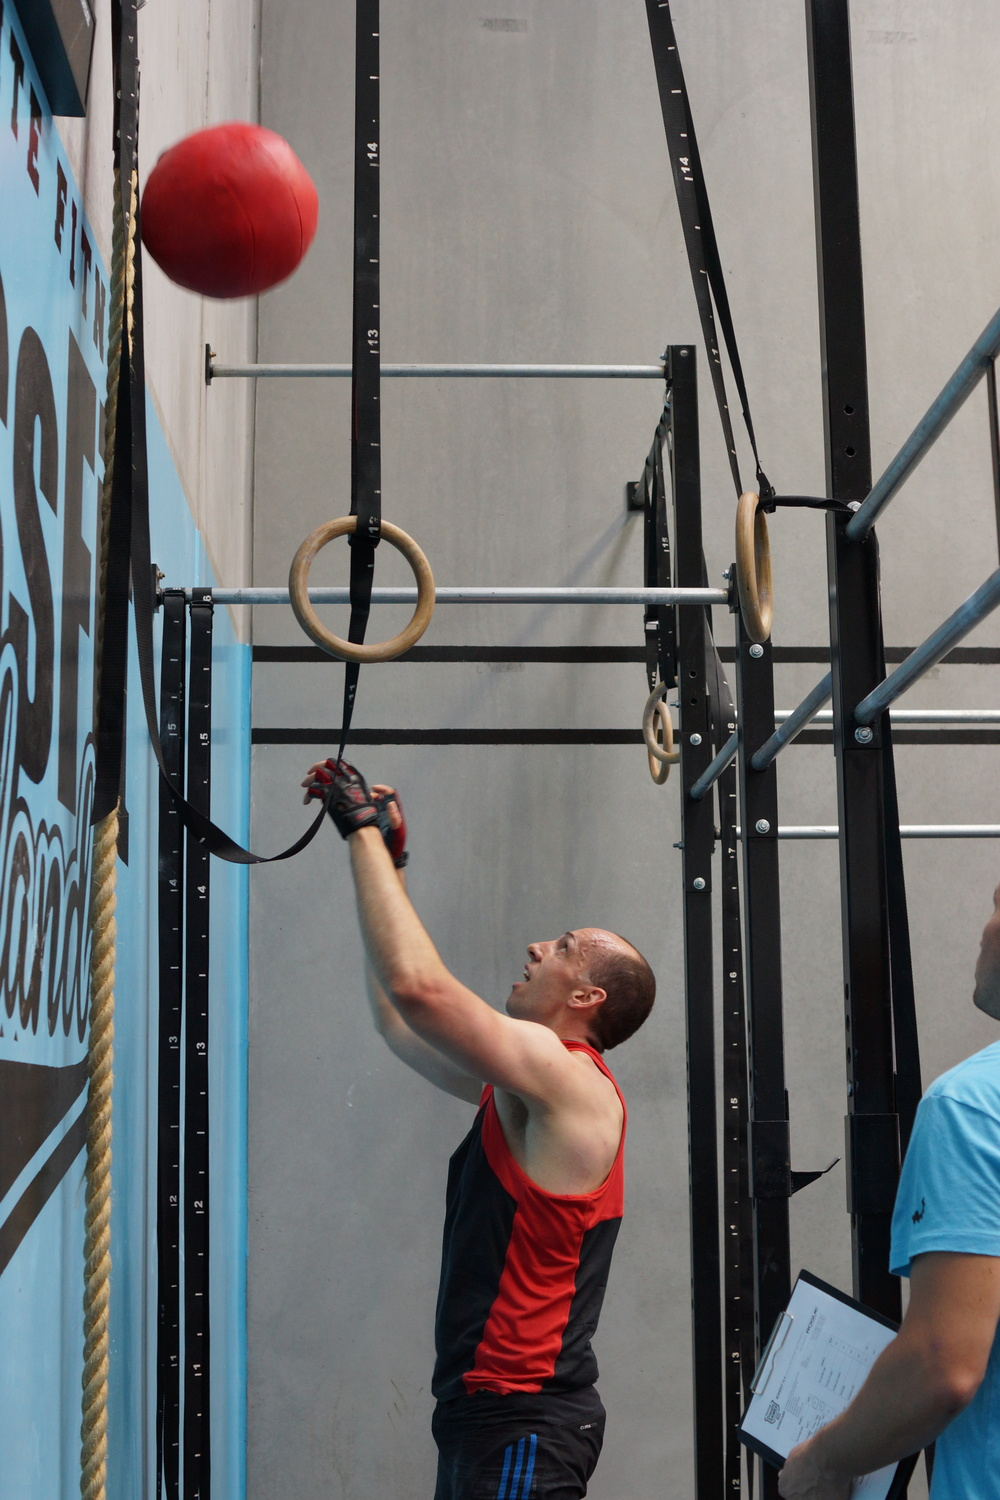 Above: Matt showing how the wall ball is done on OPEN WOD 14.4 :)